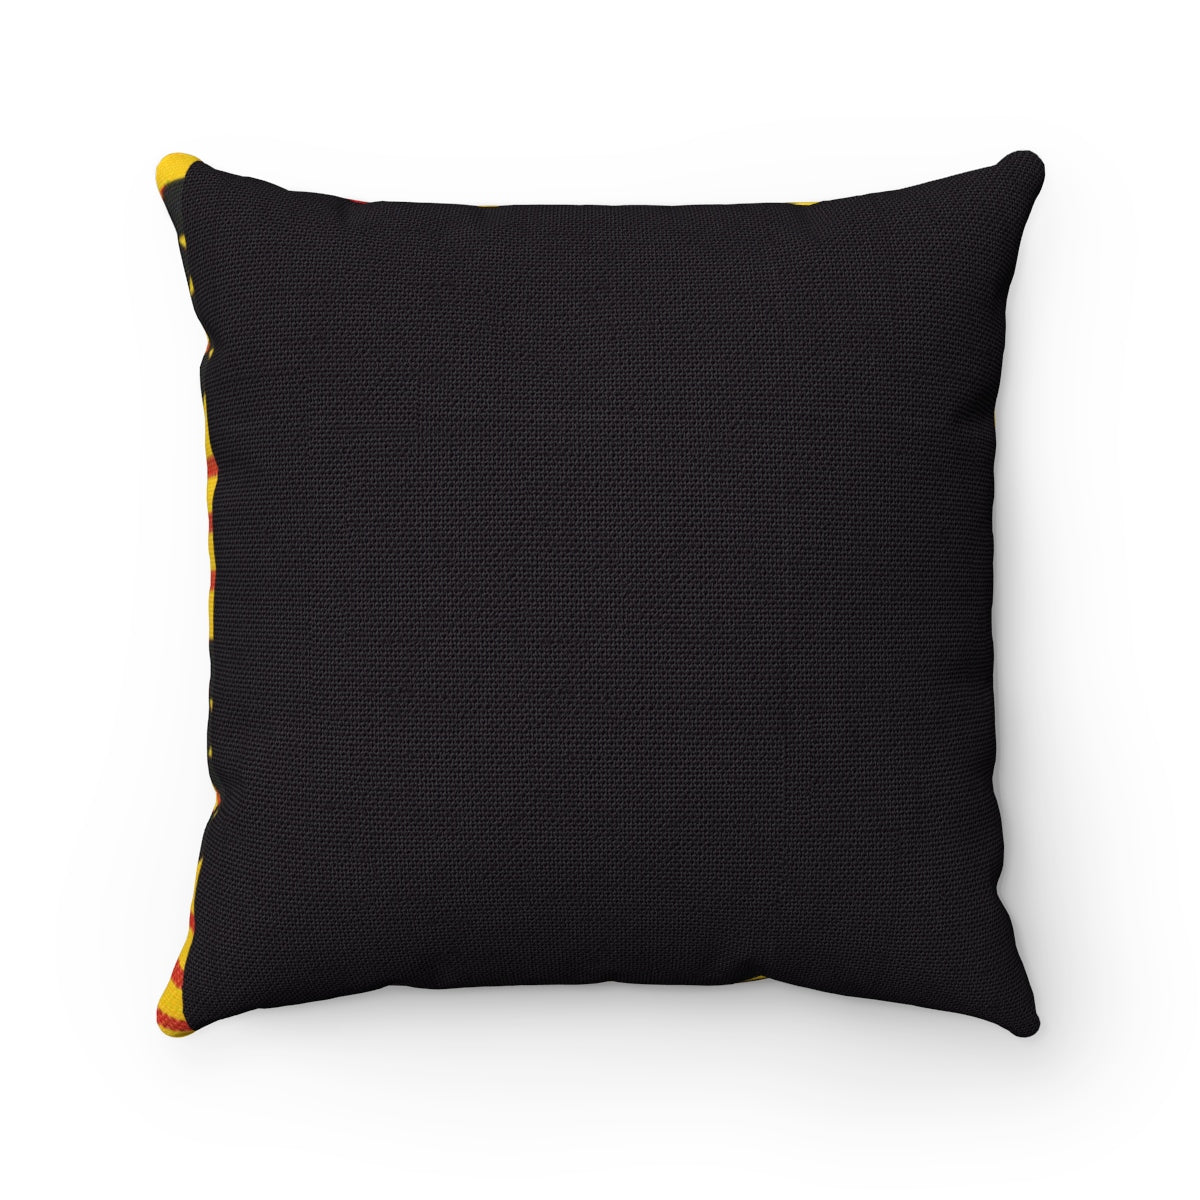 X Spun Polyester Square Pillow - Flavorsofwealth